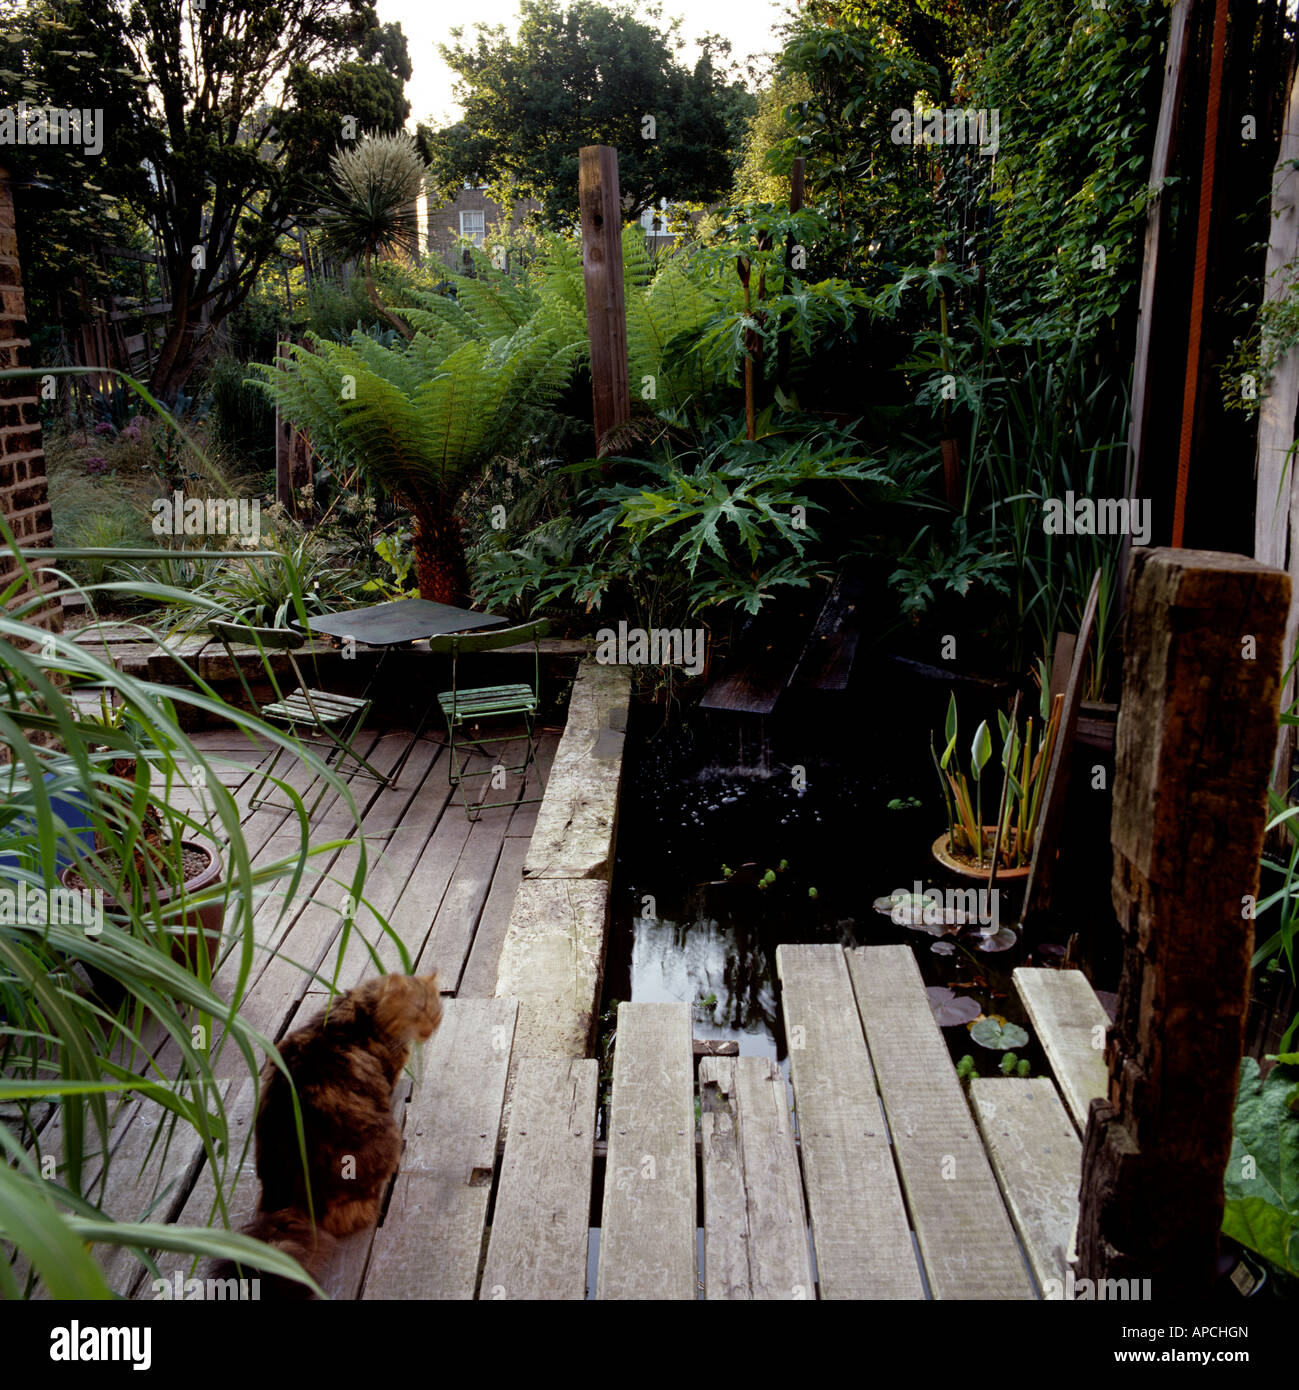 London garden with wooden decking, planted with yucca and low growing New Zealand grasses - Stock Image